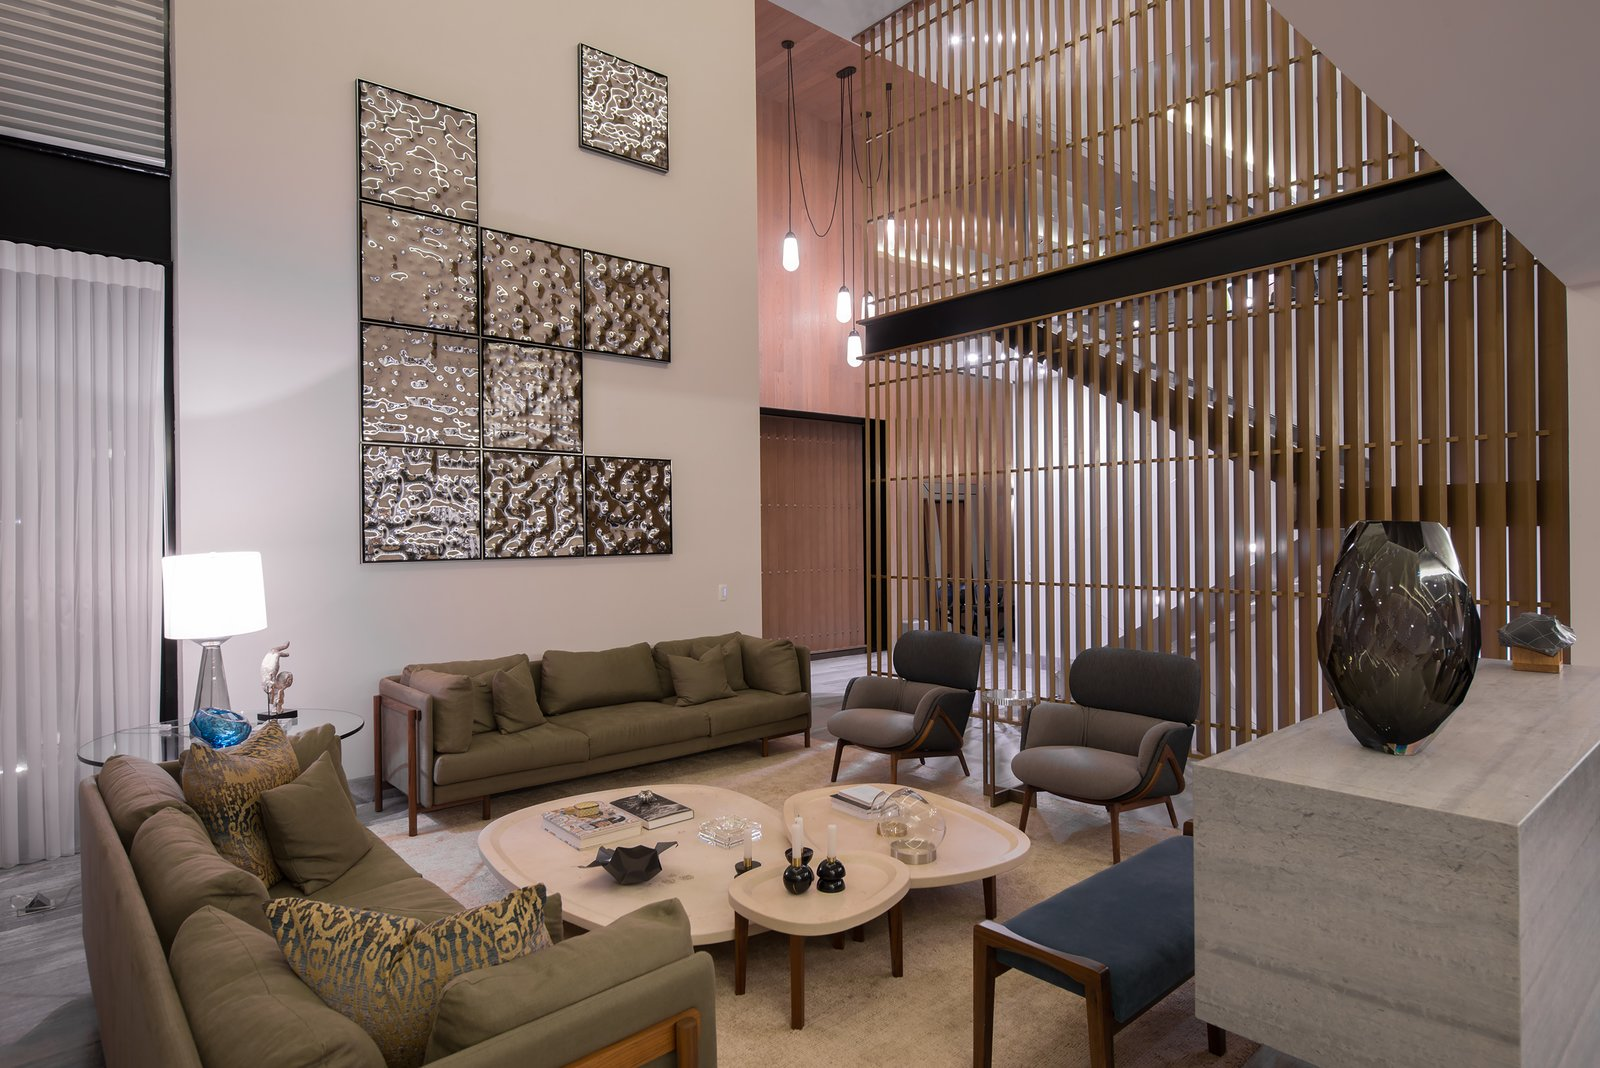 Living Room, Accent Lighting, Ceiling Lighting, Pendant Lighting, Chair, Sofa, and Floor Lighting  M-4 House by C Cúbica Arquitectos